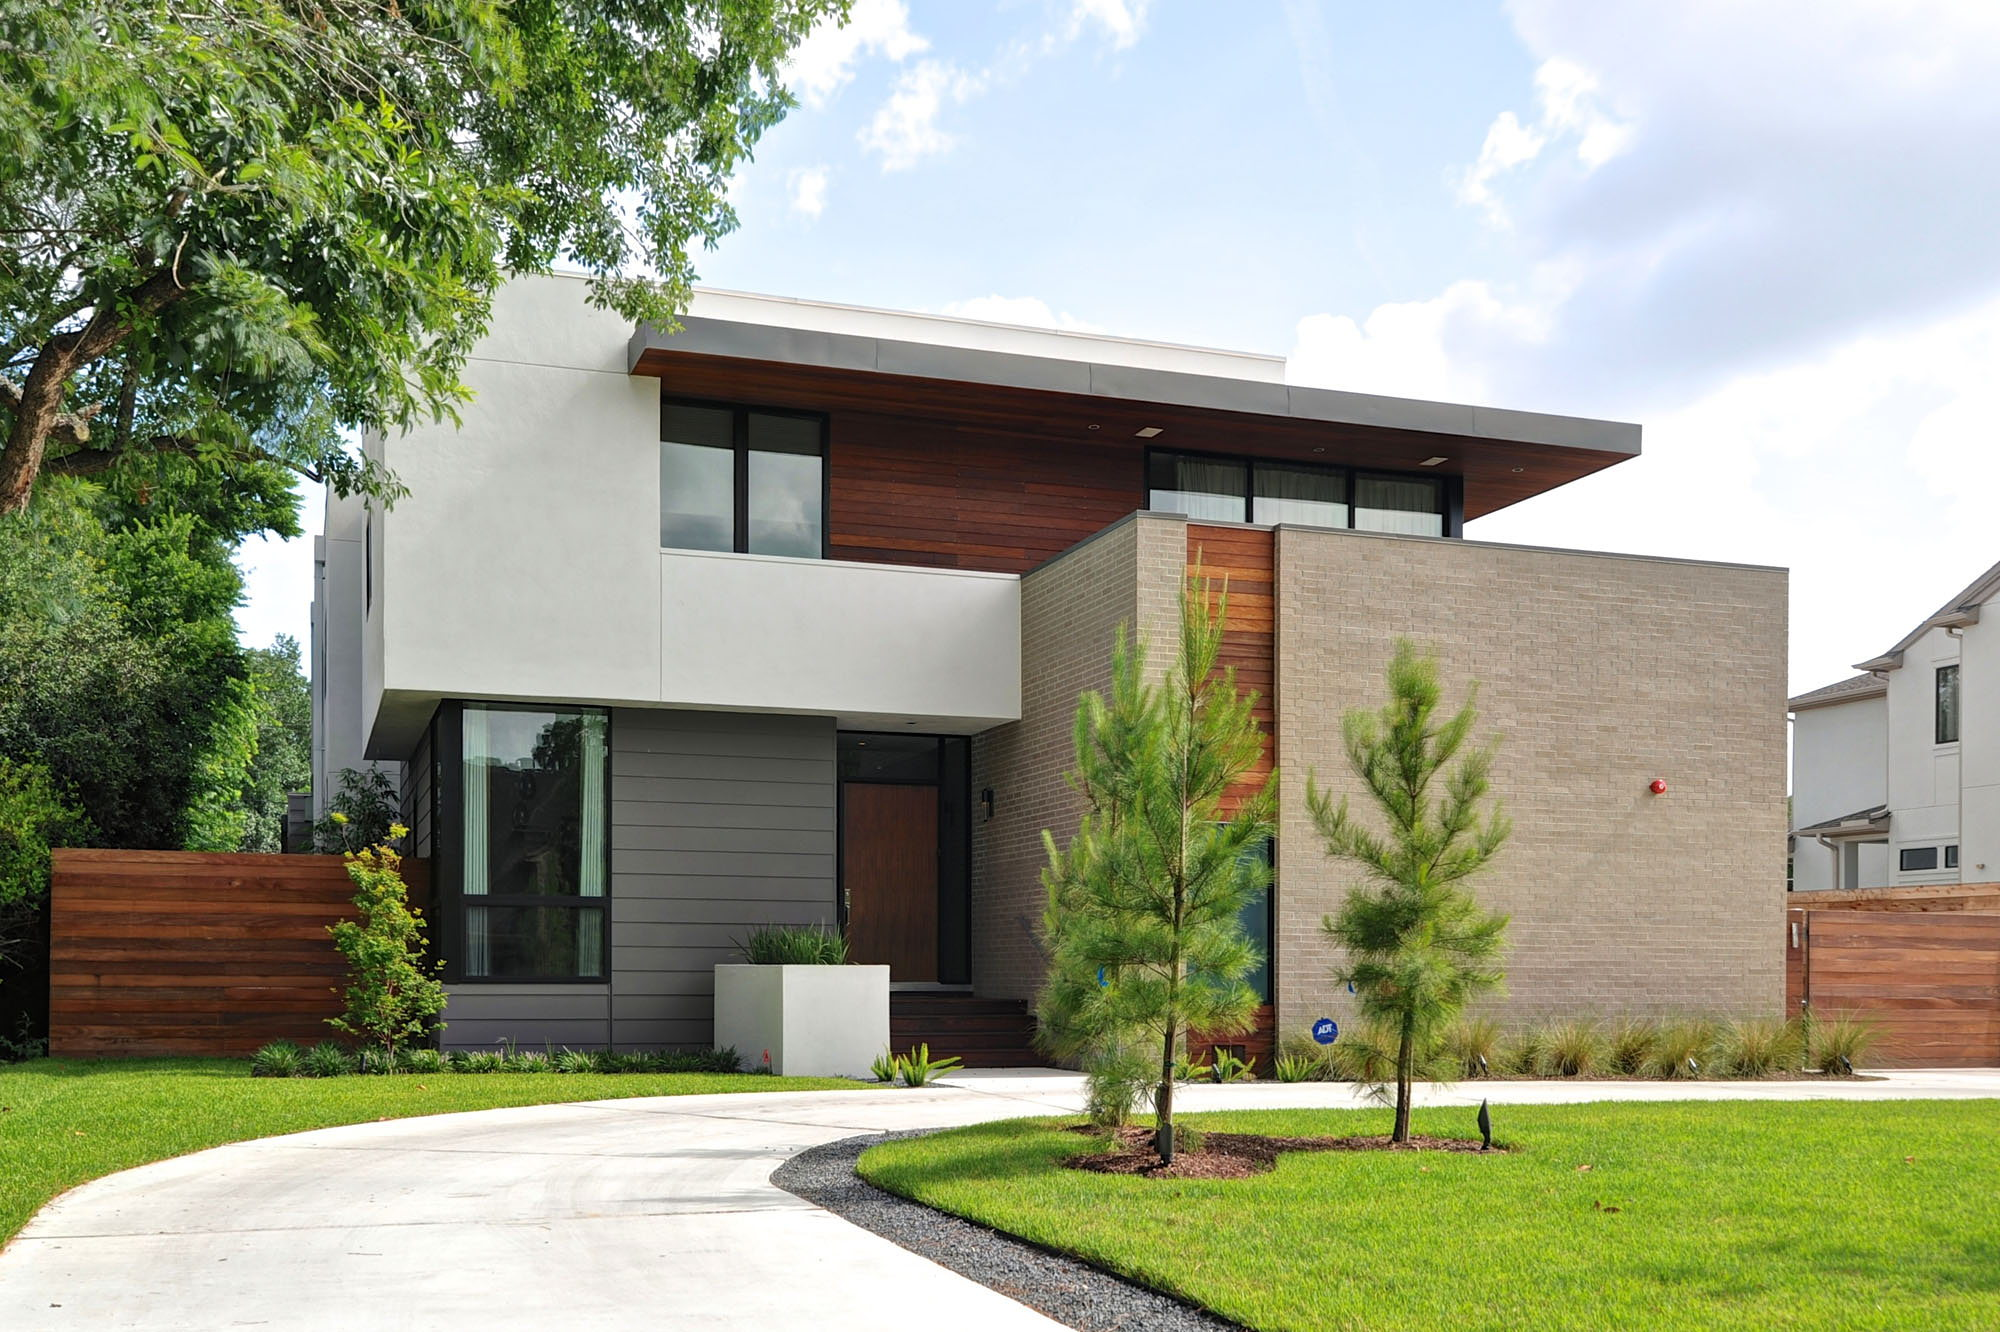 modern house in houston from architectural firm studiomet On house modern